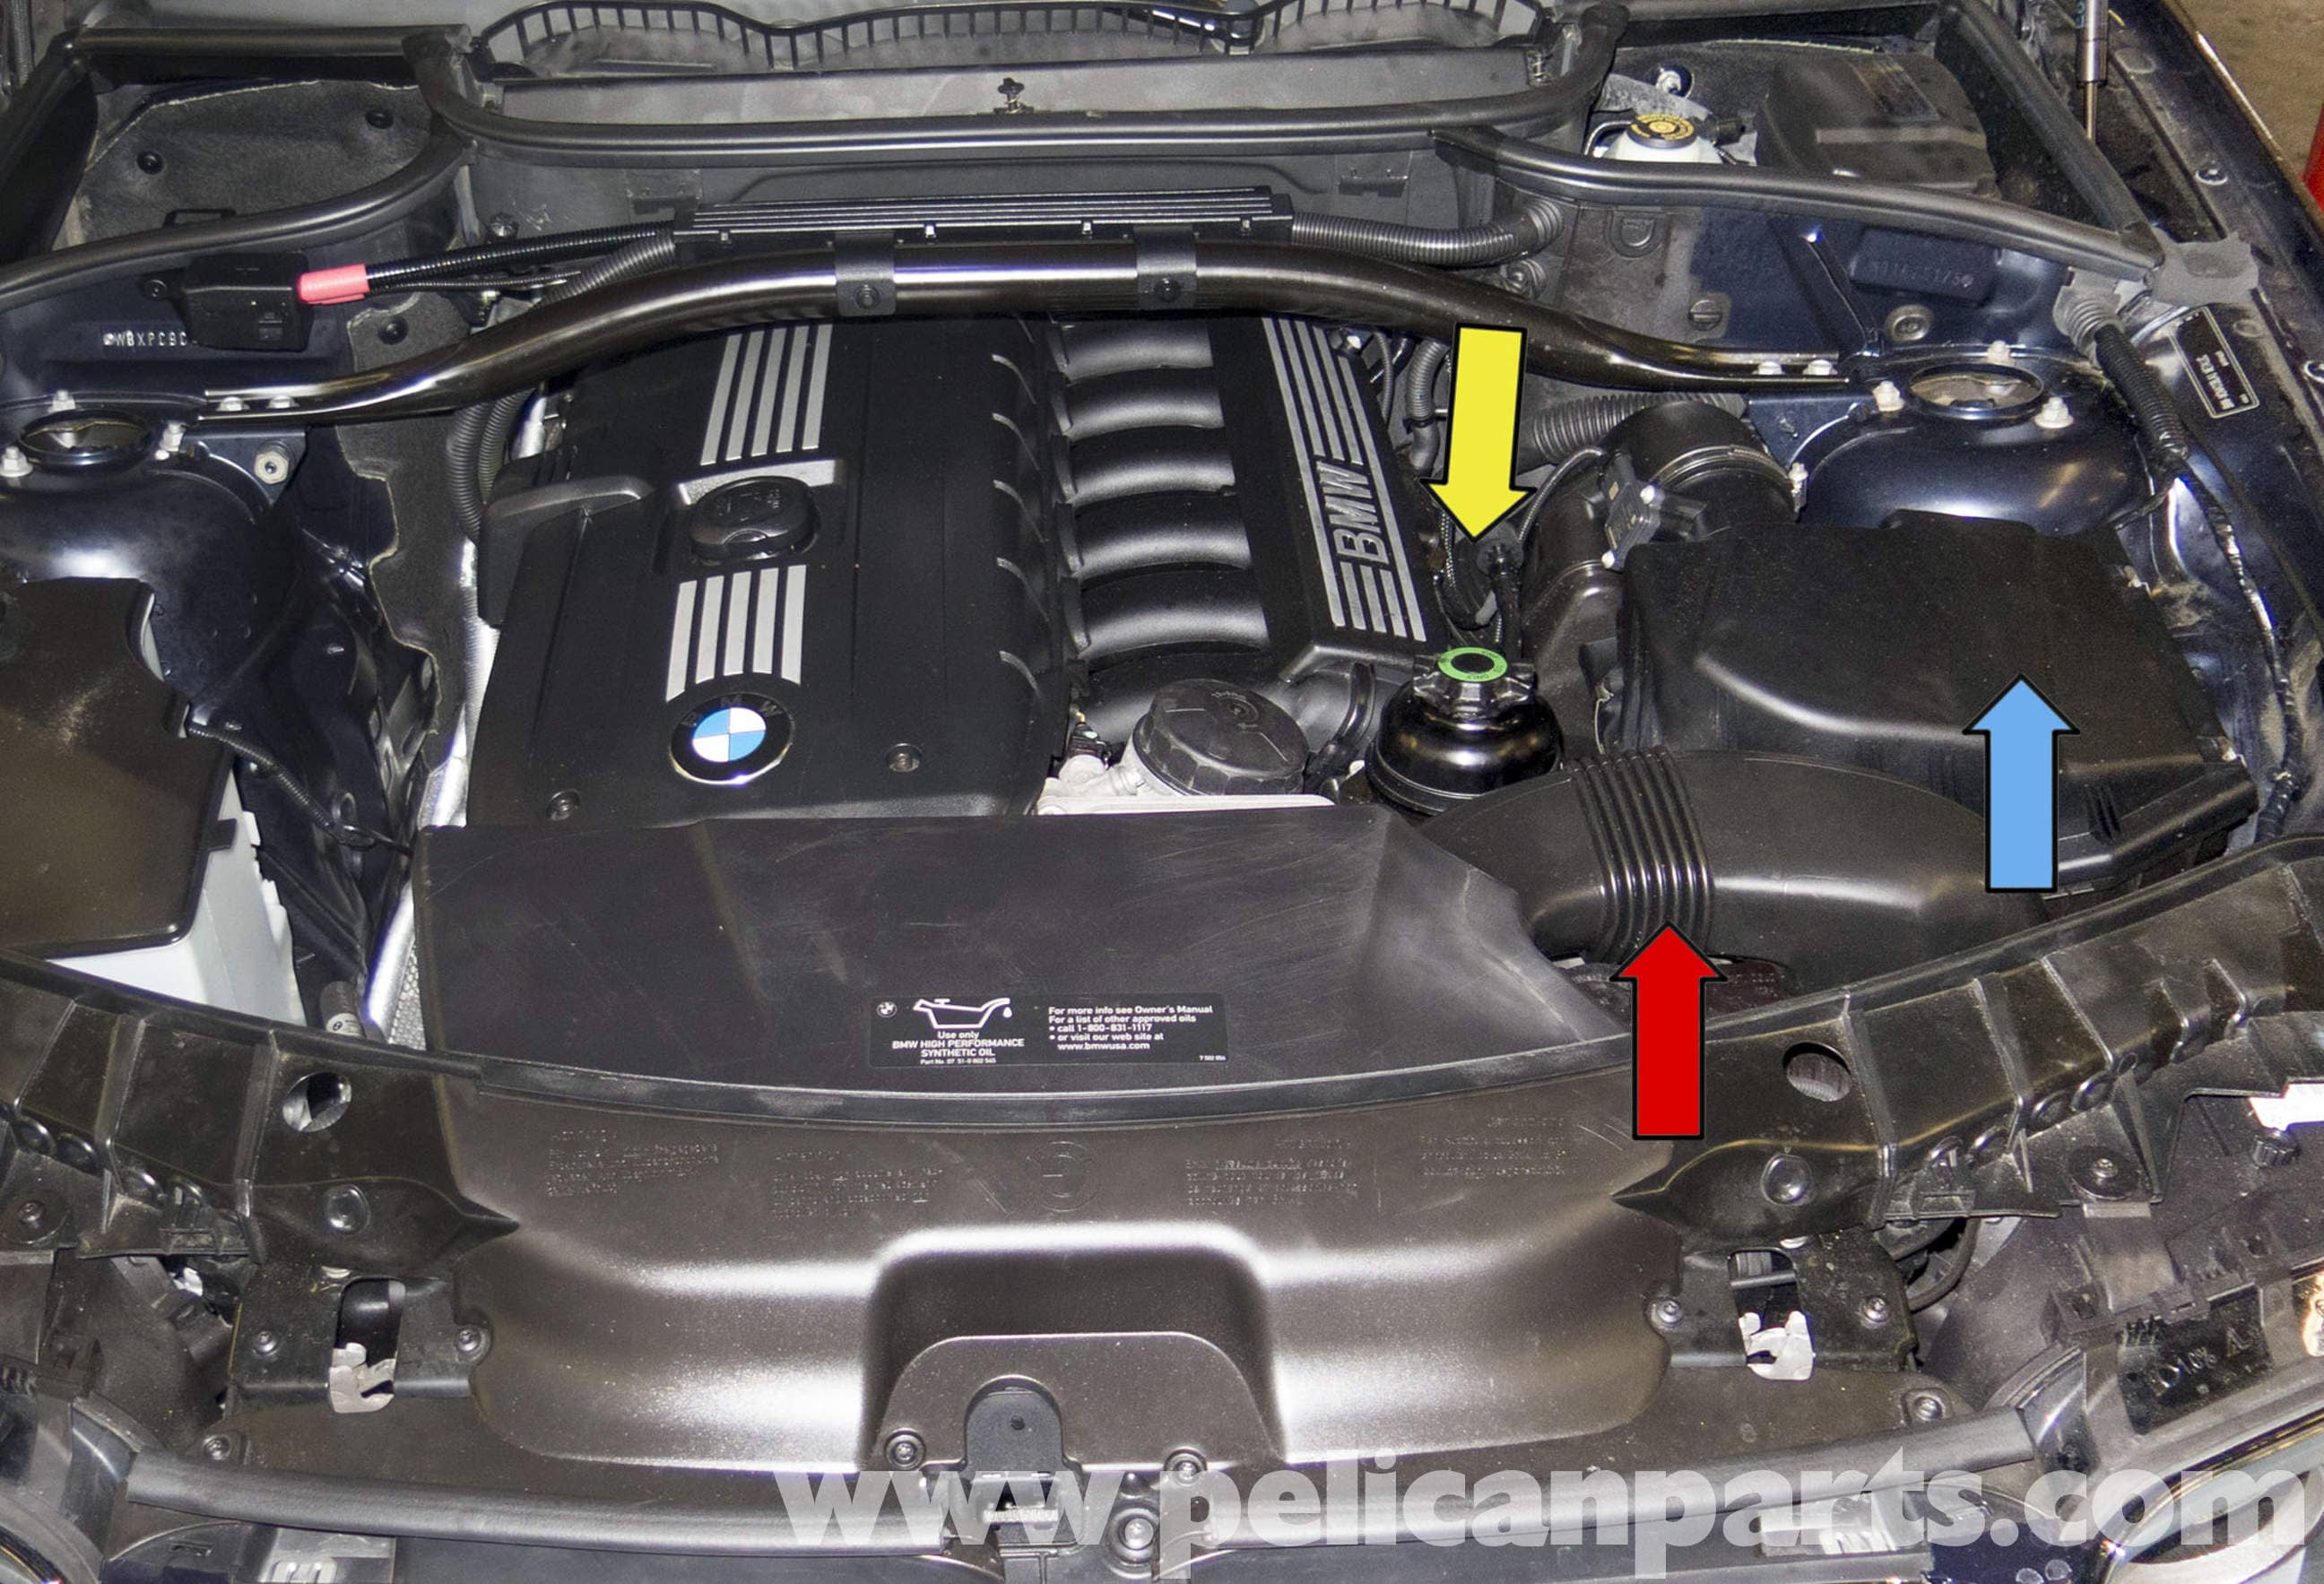 Pelican Parts Technical Article - BMW-X3 - Intake Air Ducts